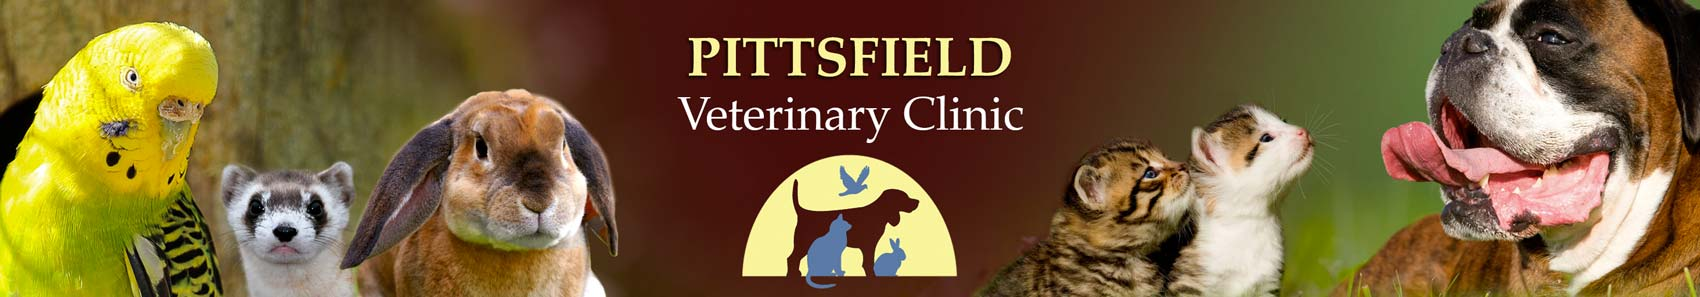 Pittsfield Veterinary Clinic